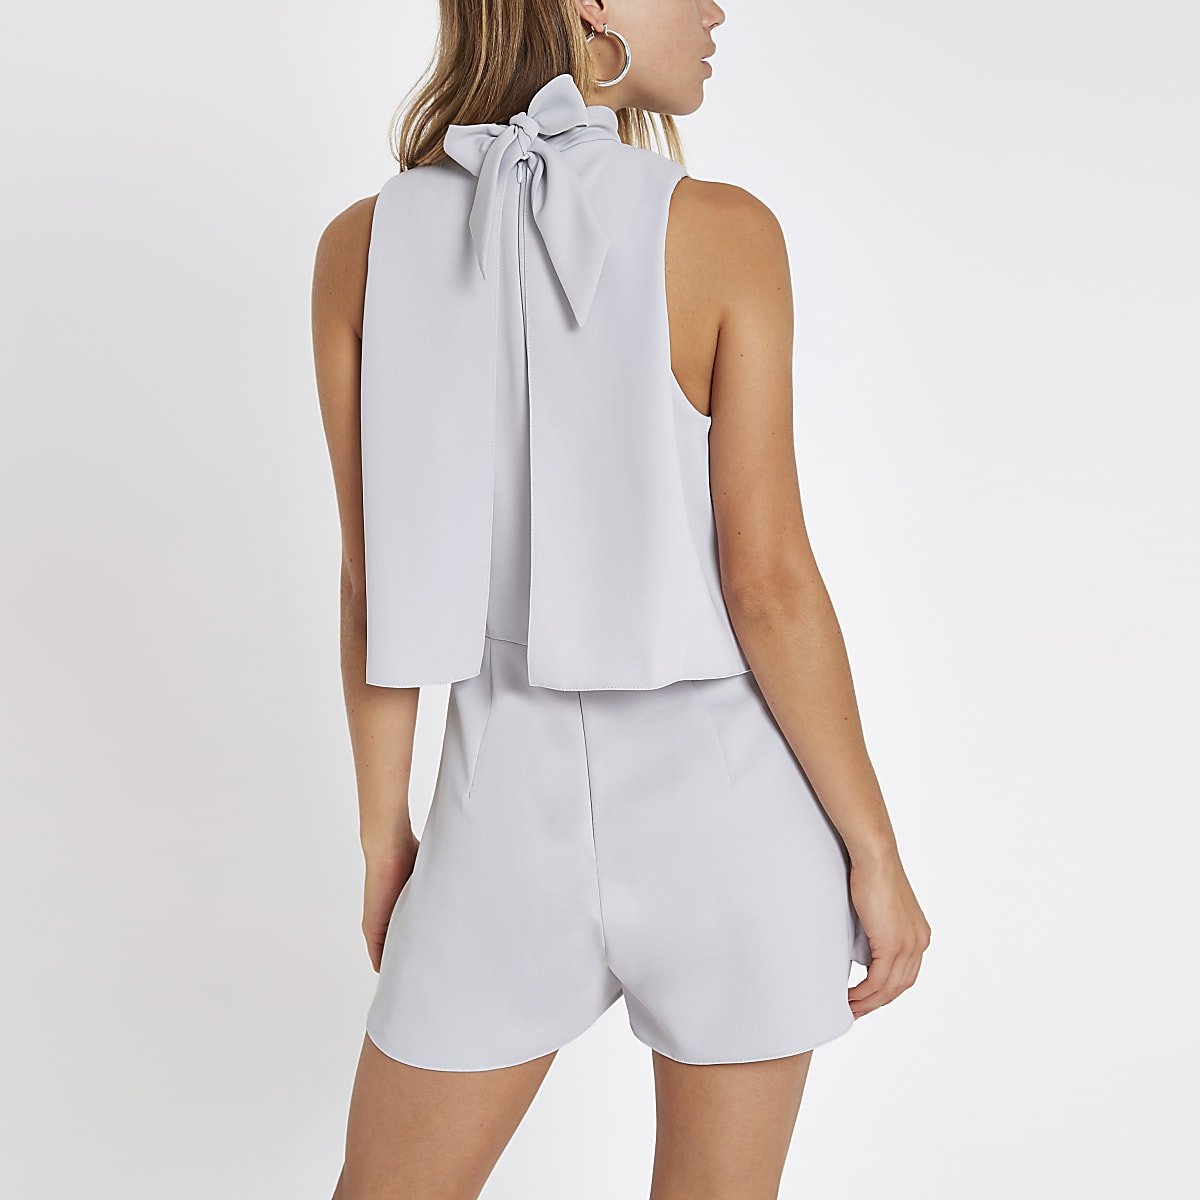 263fe711daa Grey high neck tiered frill playsuit - Playsuits - Playsuits ...